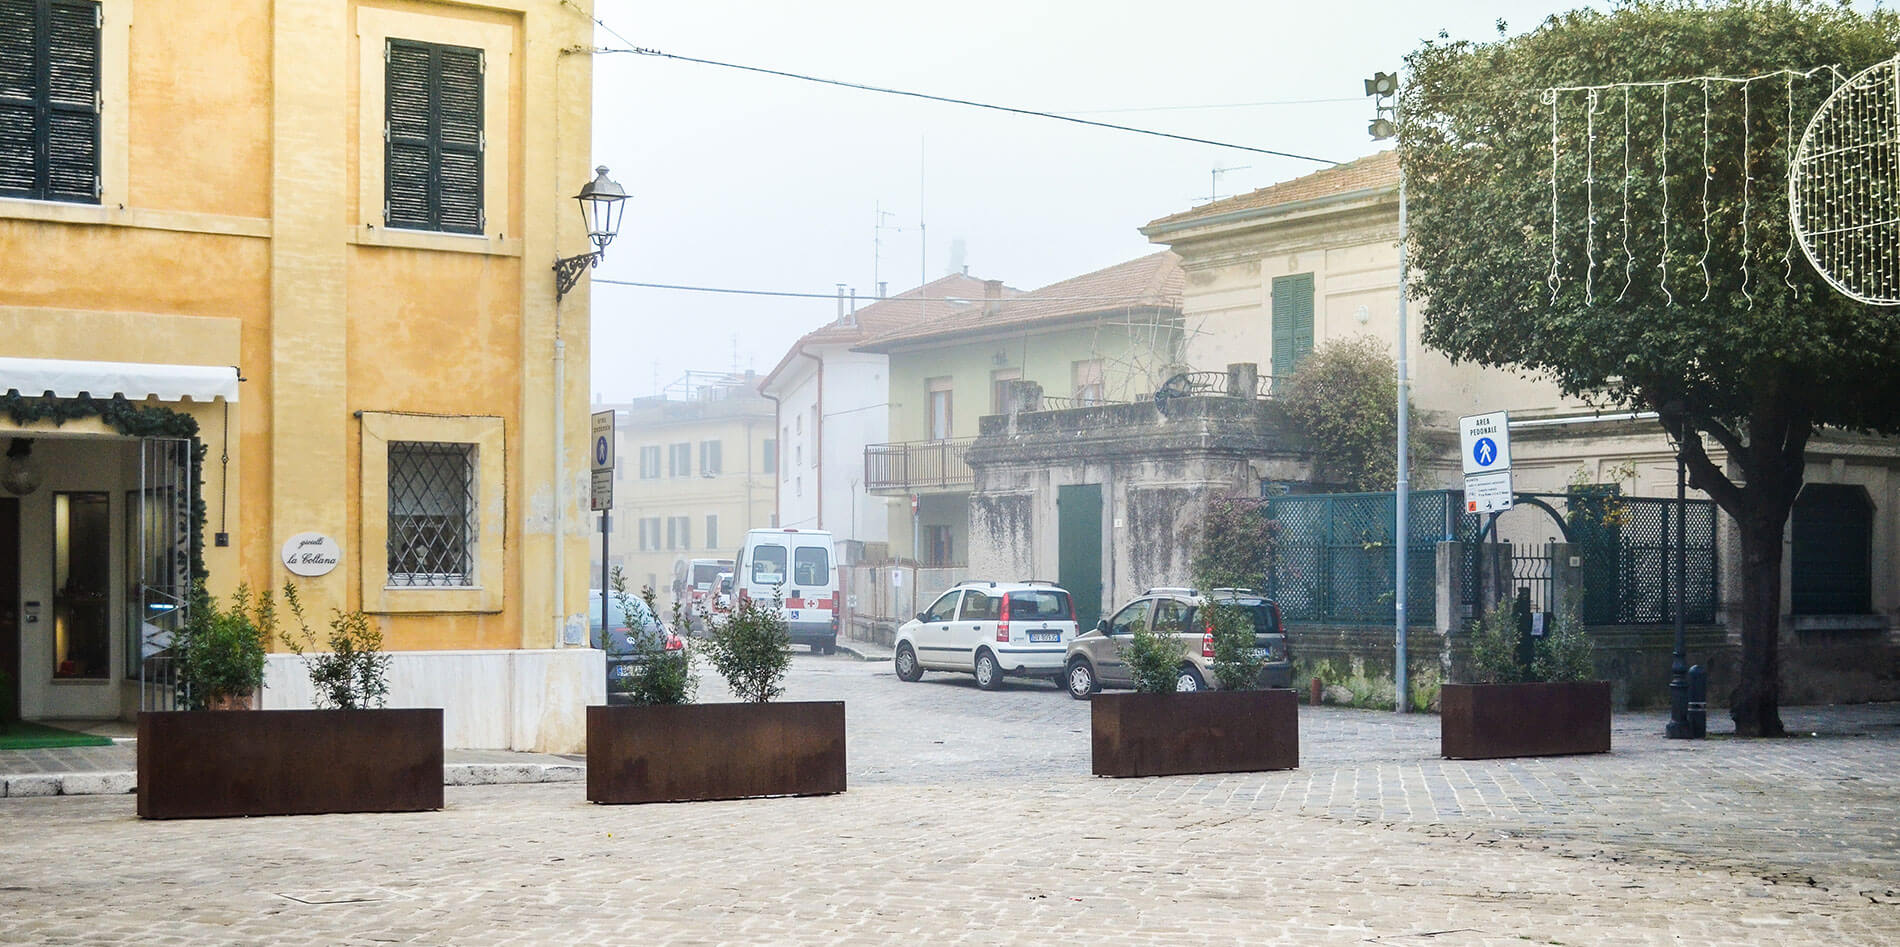 Anti-terrorism barriers to protect Senigallia's Square